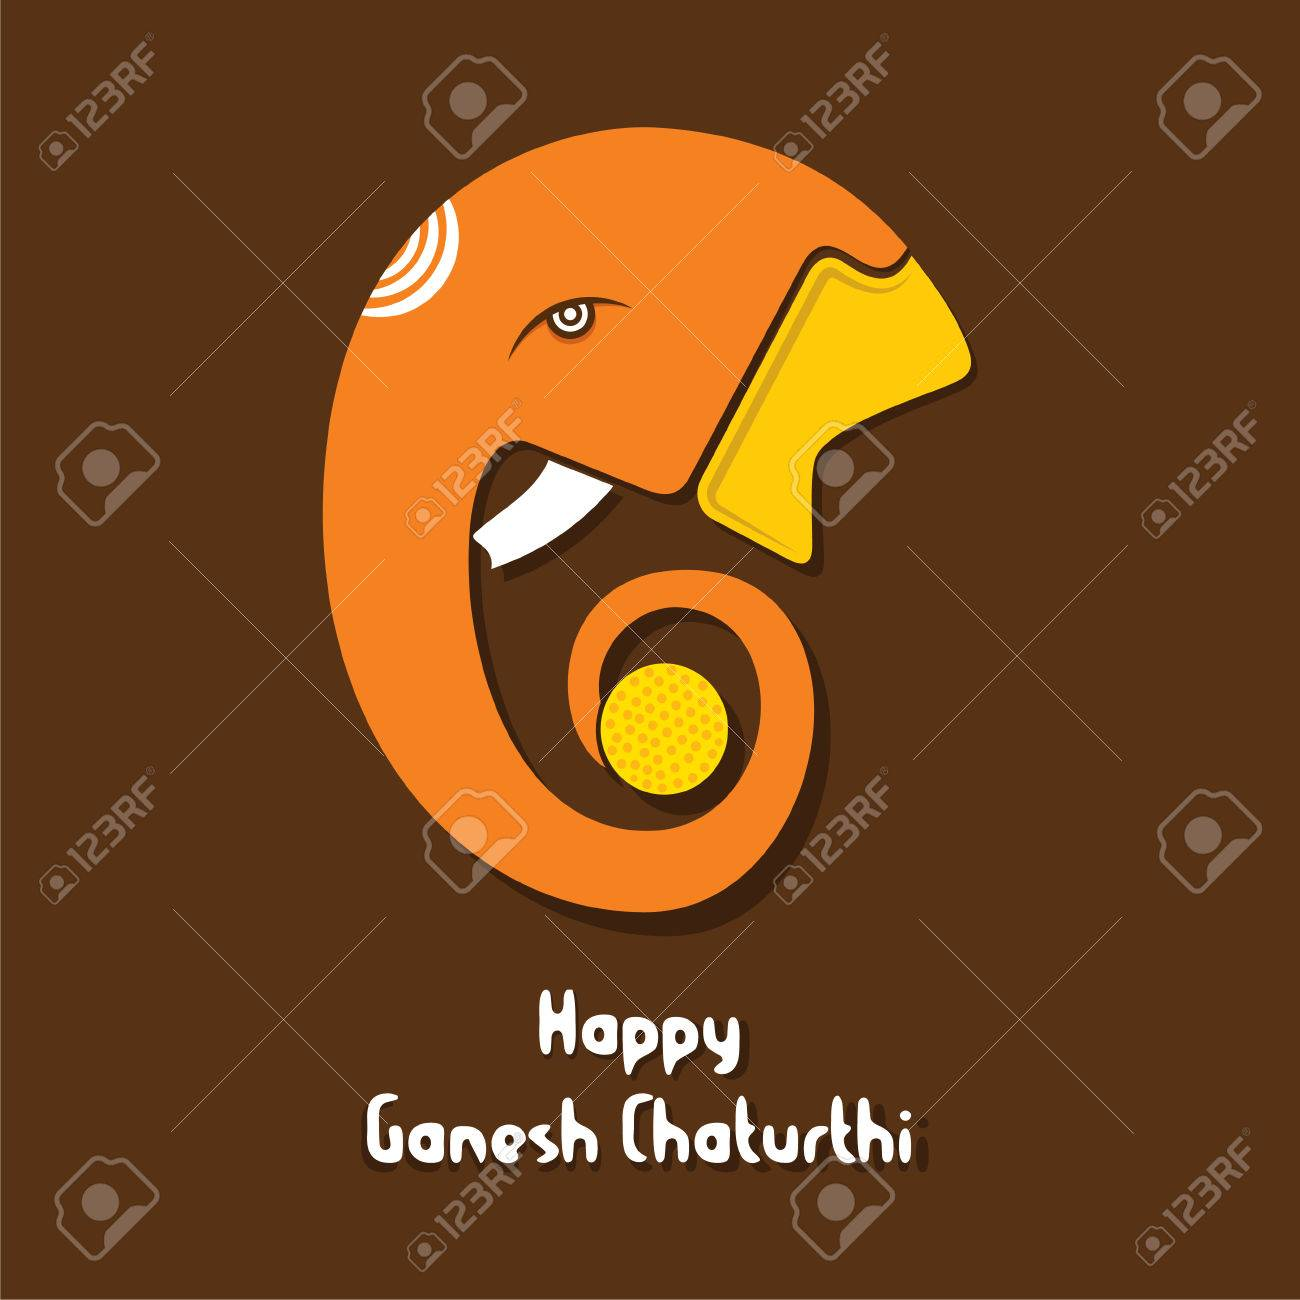 Ganesha chaturthi festival greeting card design vector royalty free ganesha chaturthi festival greeting card design vector stock vector 60699720 m4hsunfo